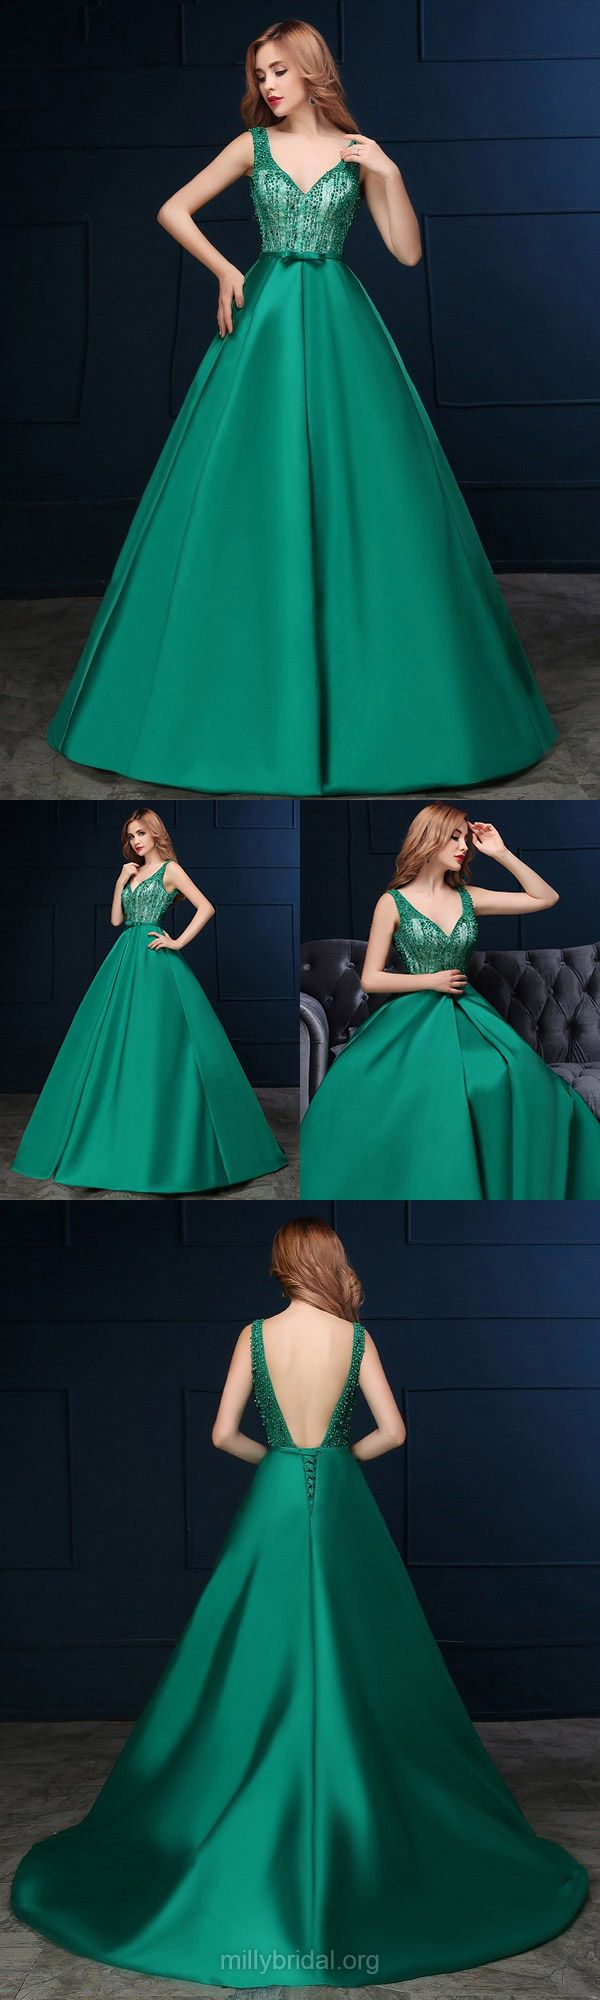 Ball Gown Prom Dresses Green, Long Prom Dresses V-neck, Satin Formal Party Dresses Backless Promotion